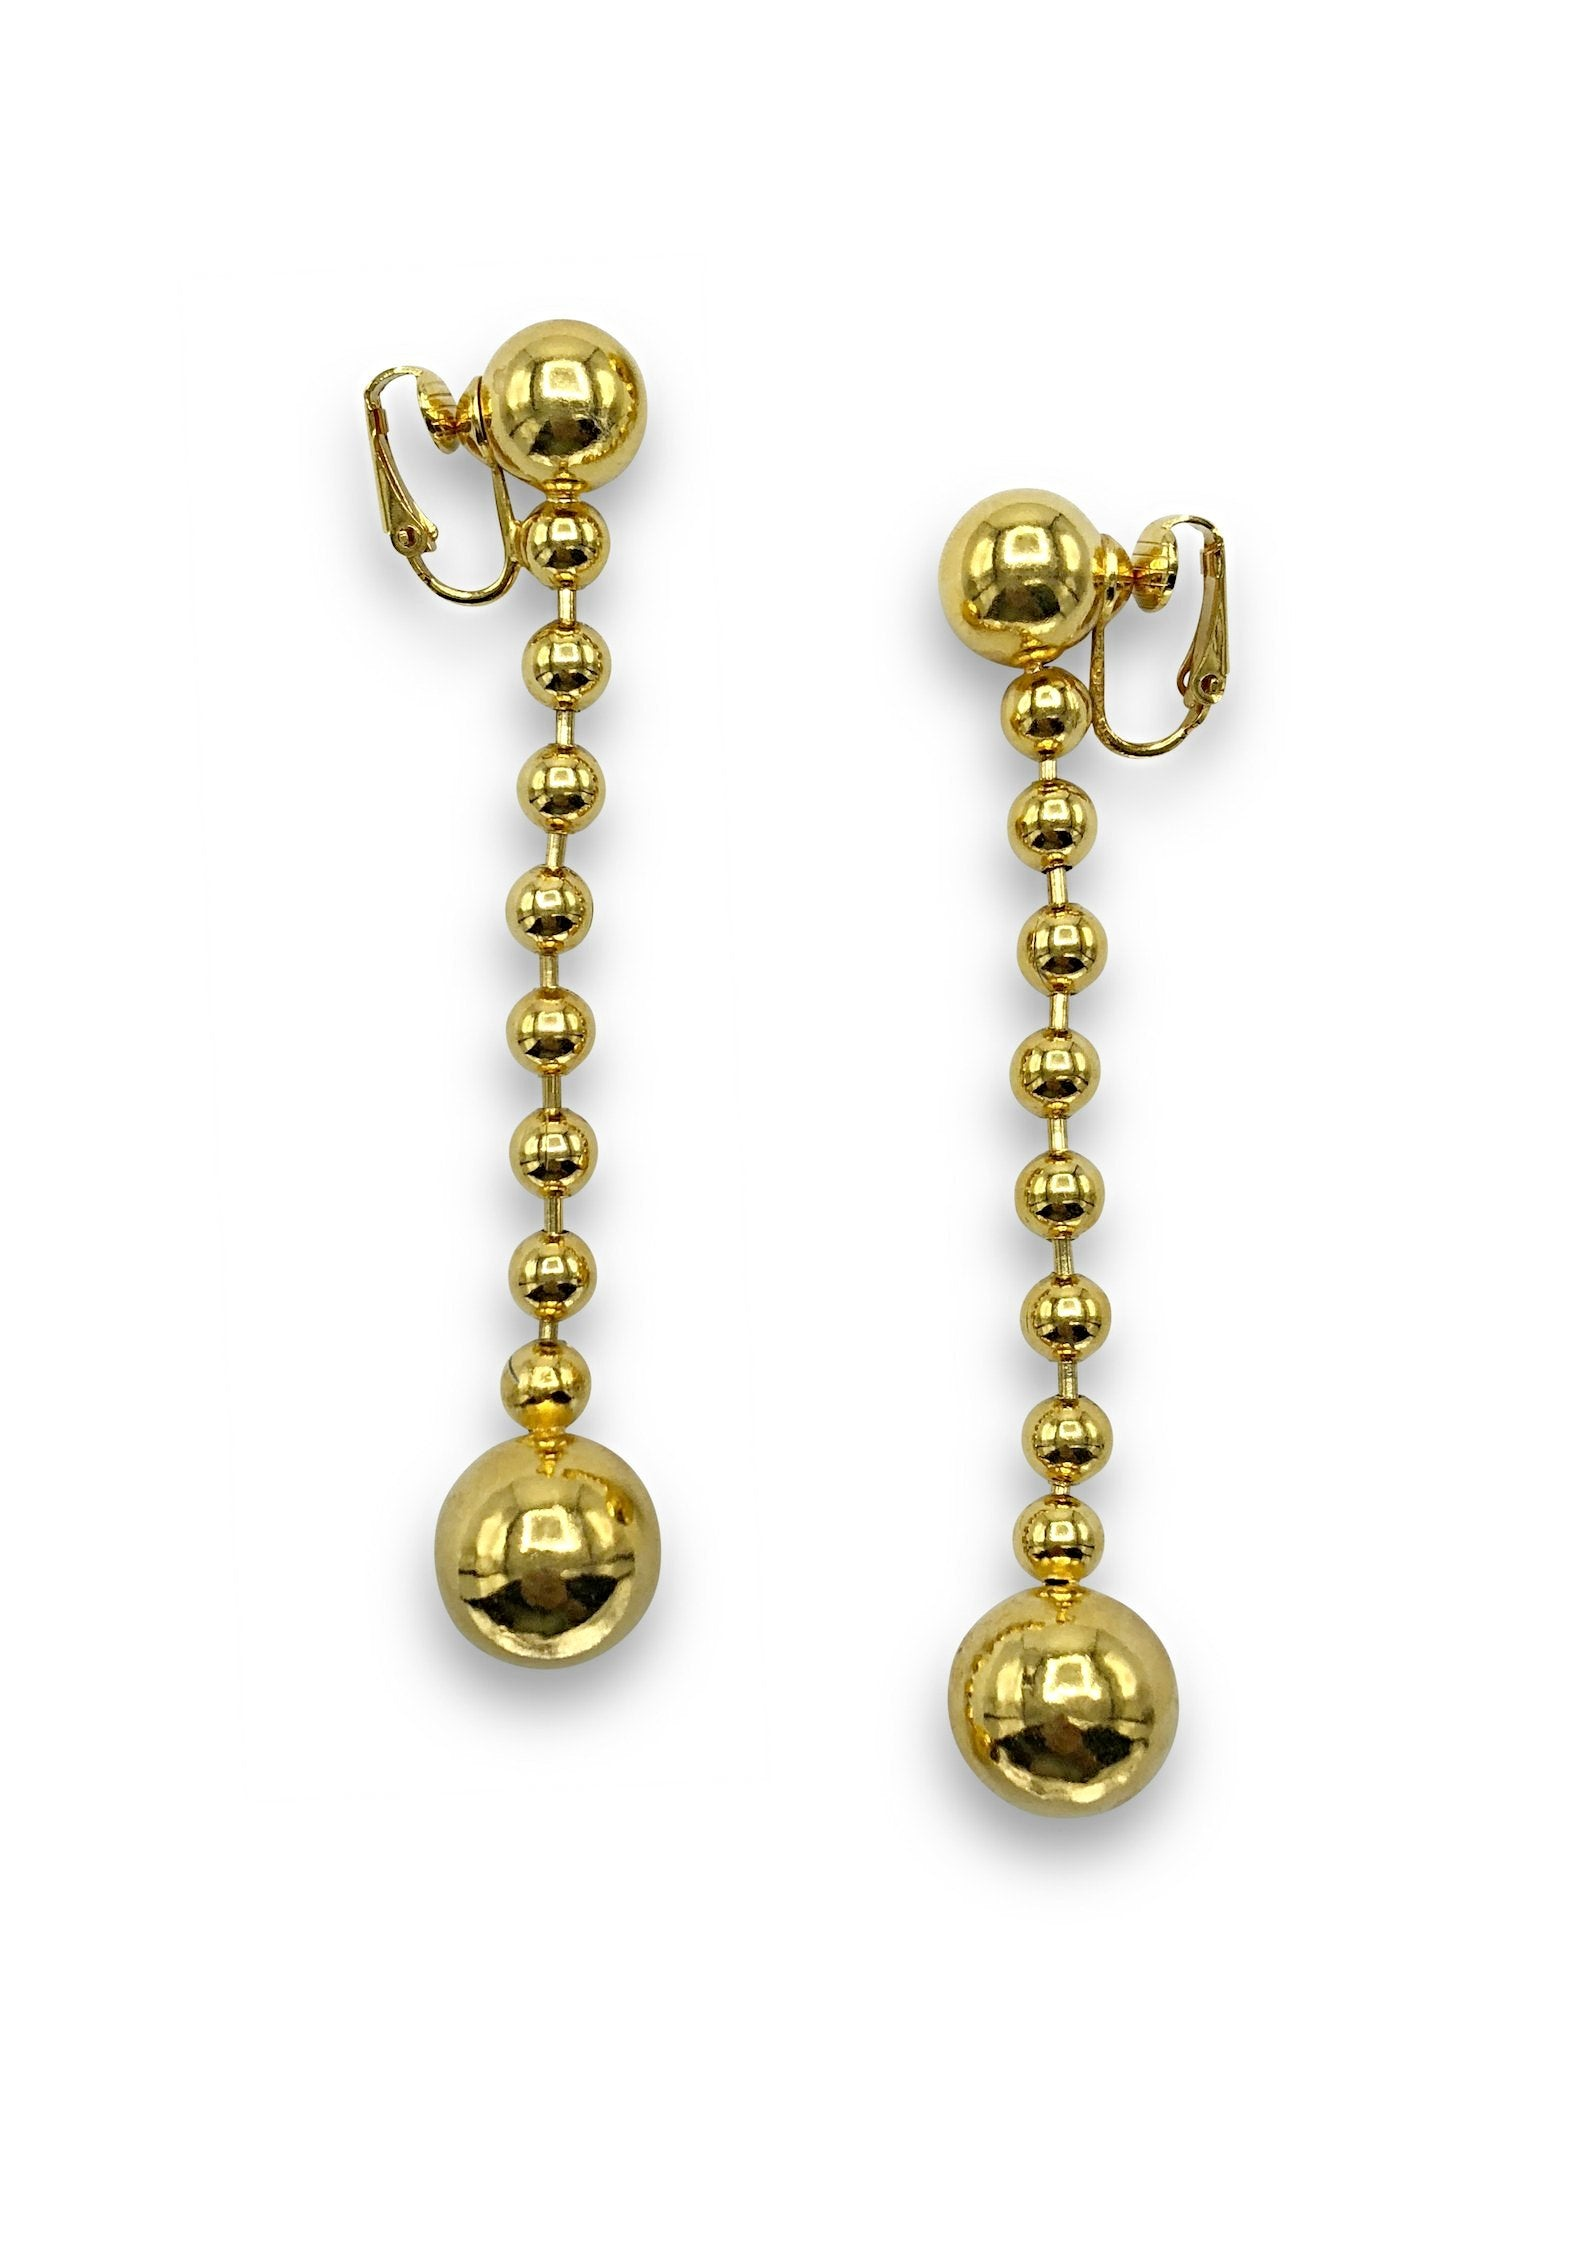 Orbita Constellation Gold Clip Earrings-Earrings-JAREDJAMIN Jewelry Online-JARED JAMIN